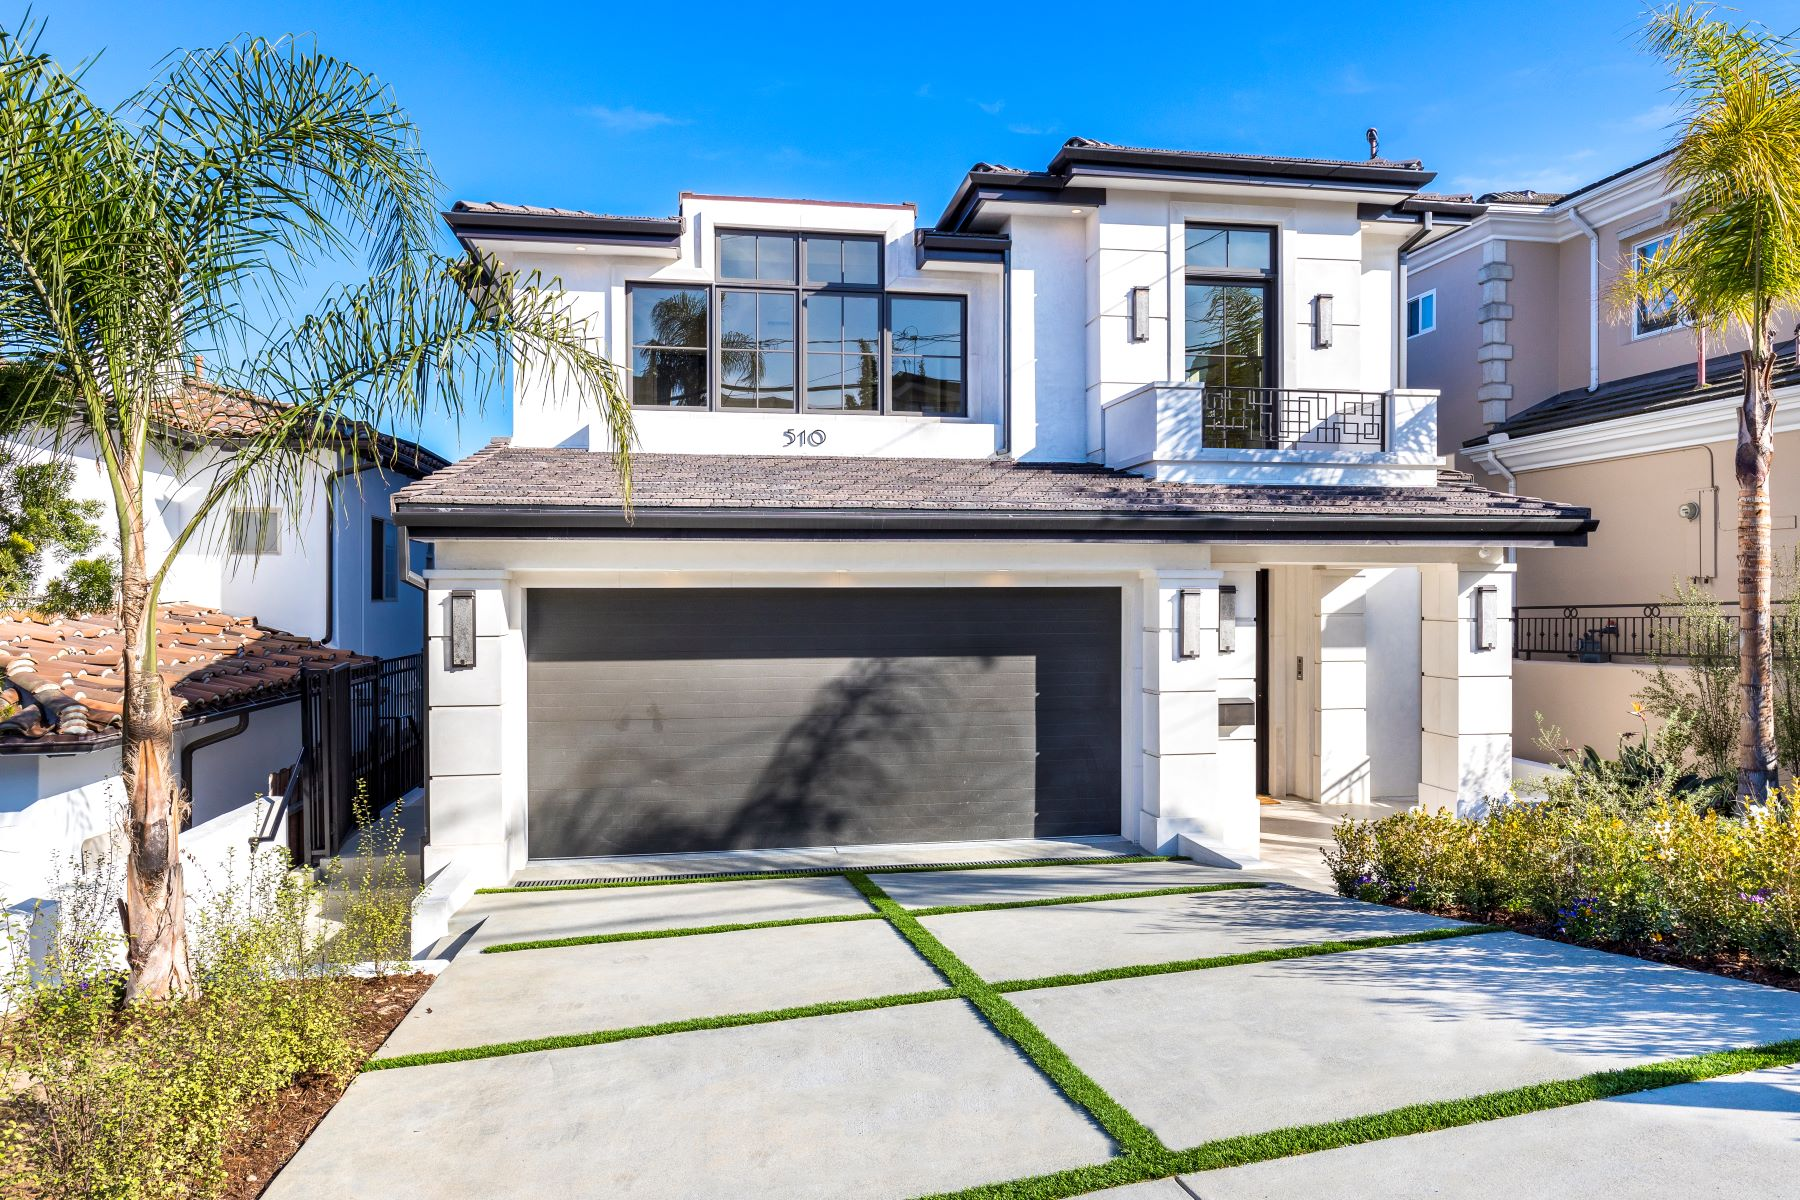 Single Family Homes for Active at 510 North Dianthus Street, Manhattan Beach, CA 90266 510 North Dianthus Street Manhattan Beach, California 90266 United States